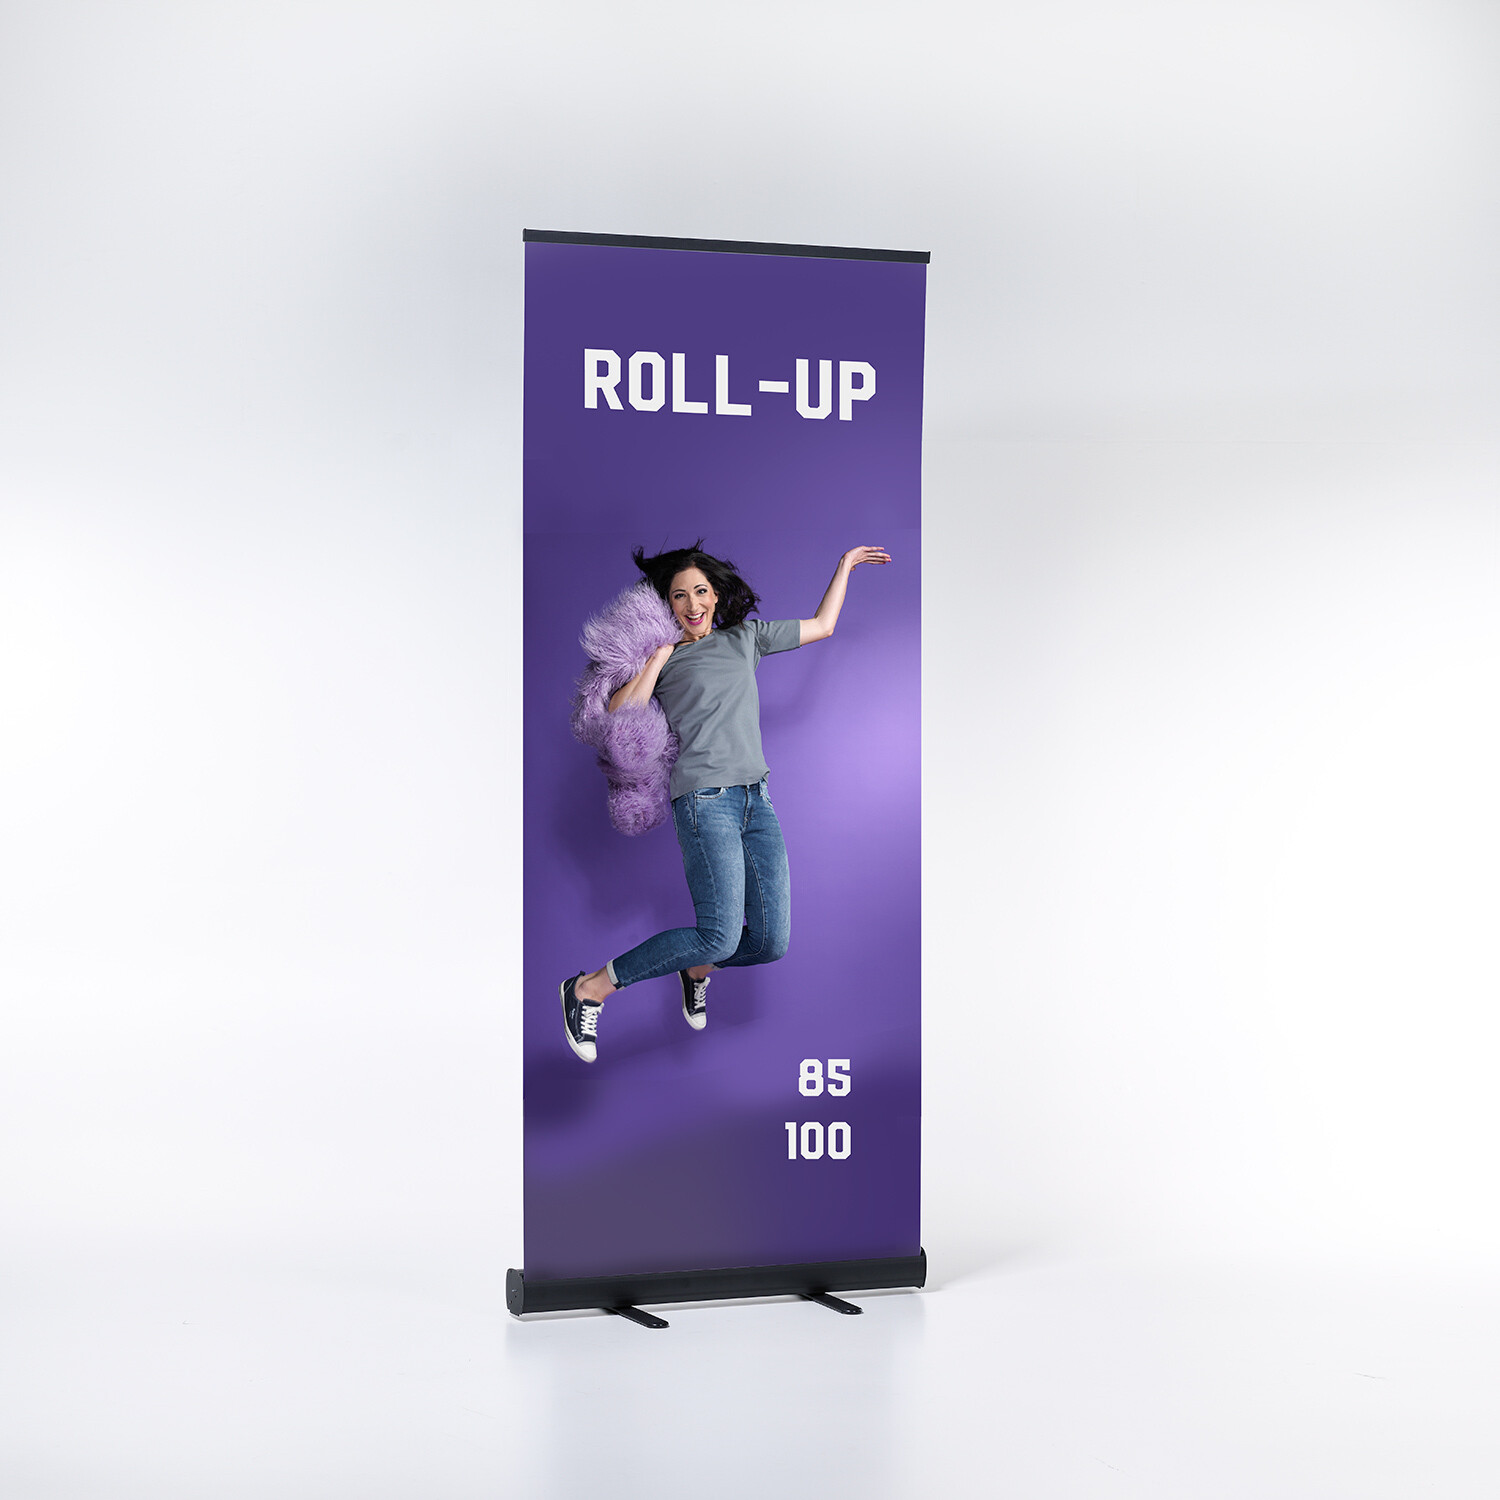 85 x 200 cm – Roll-up